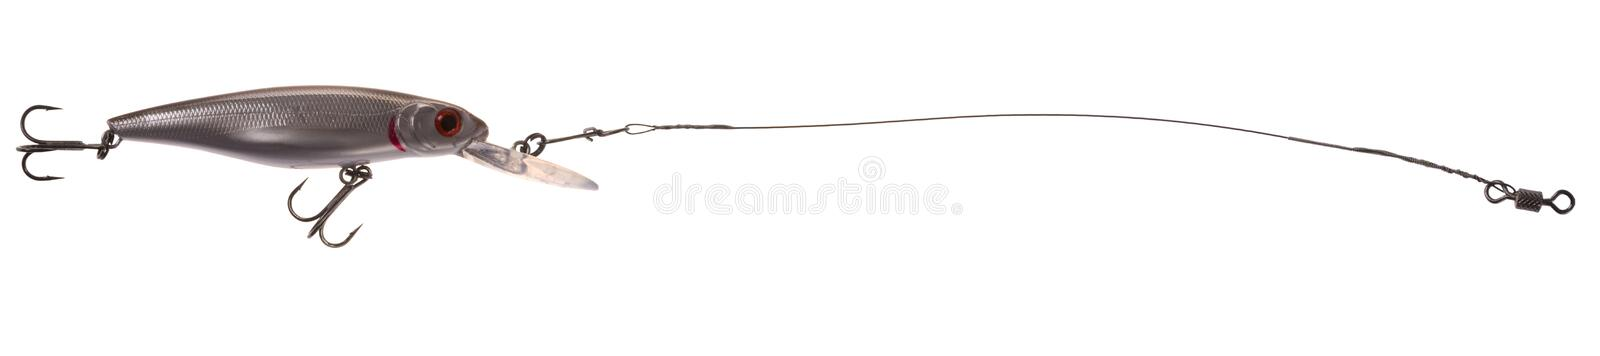 Fishing bait wobbler. Isolated on white background royalty free stock photography